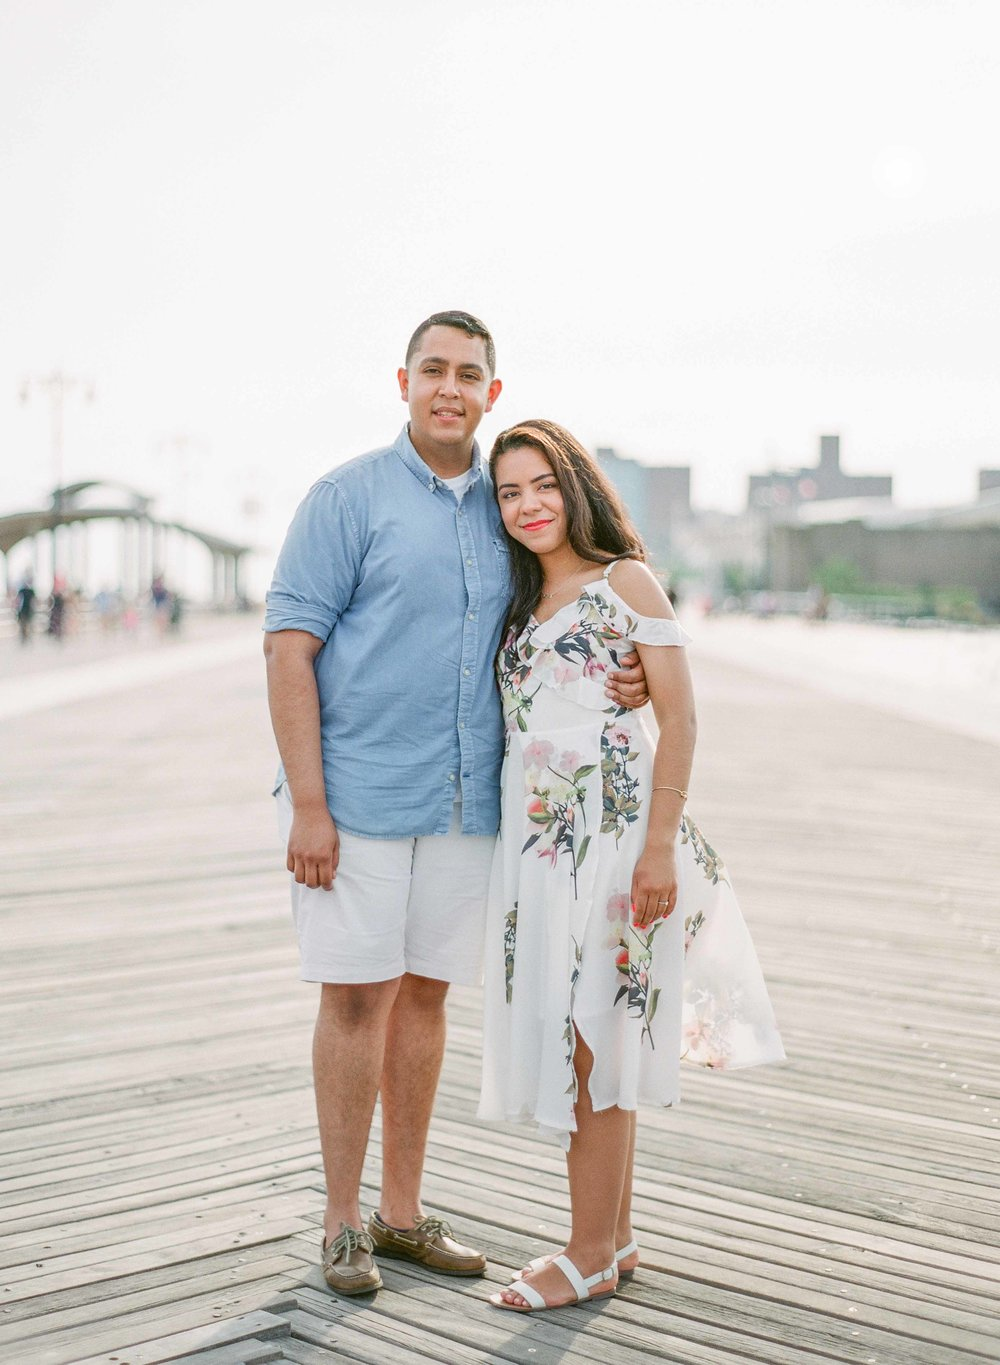 Coney Island boardwalk engagement photo